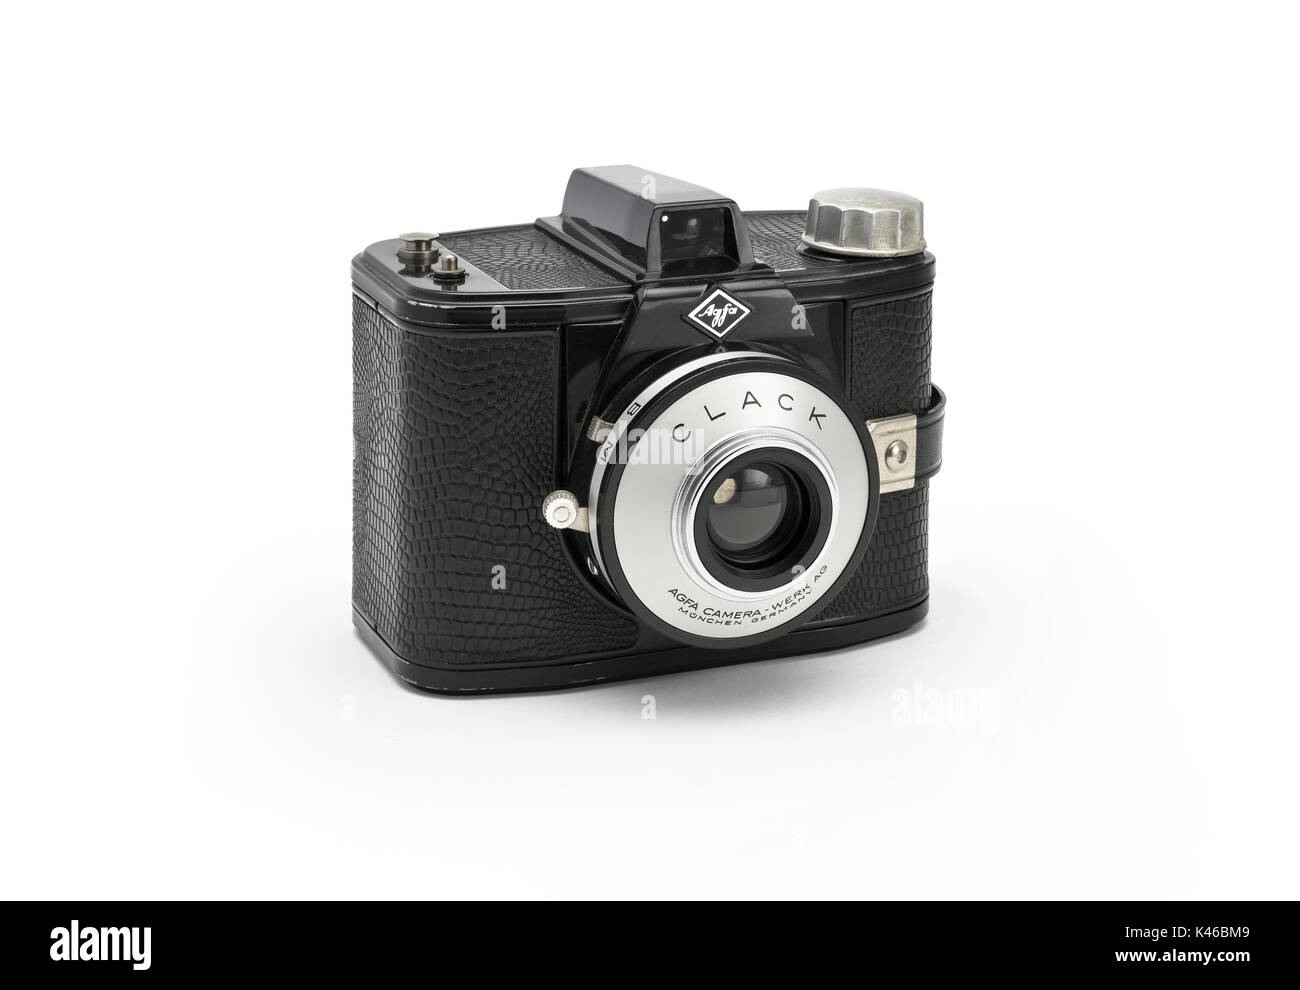 Vintage Agfa 'Clack' film camera from the early 1960's - Stock Image